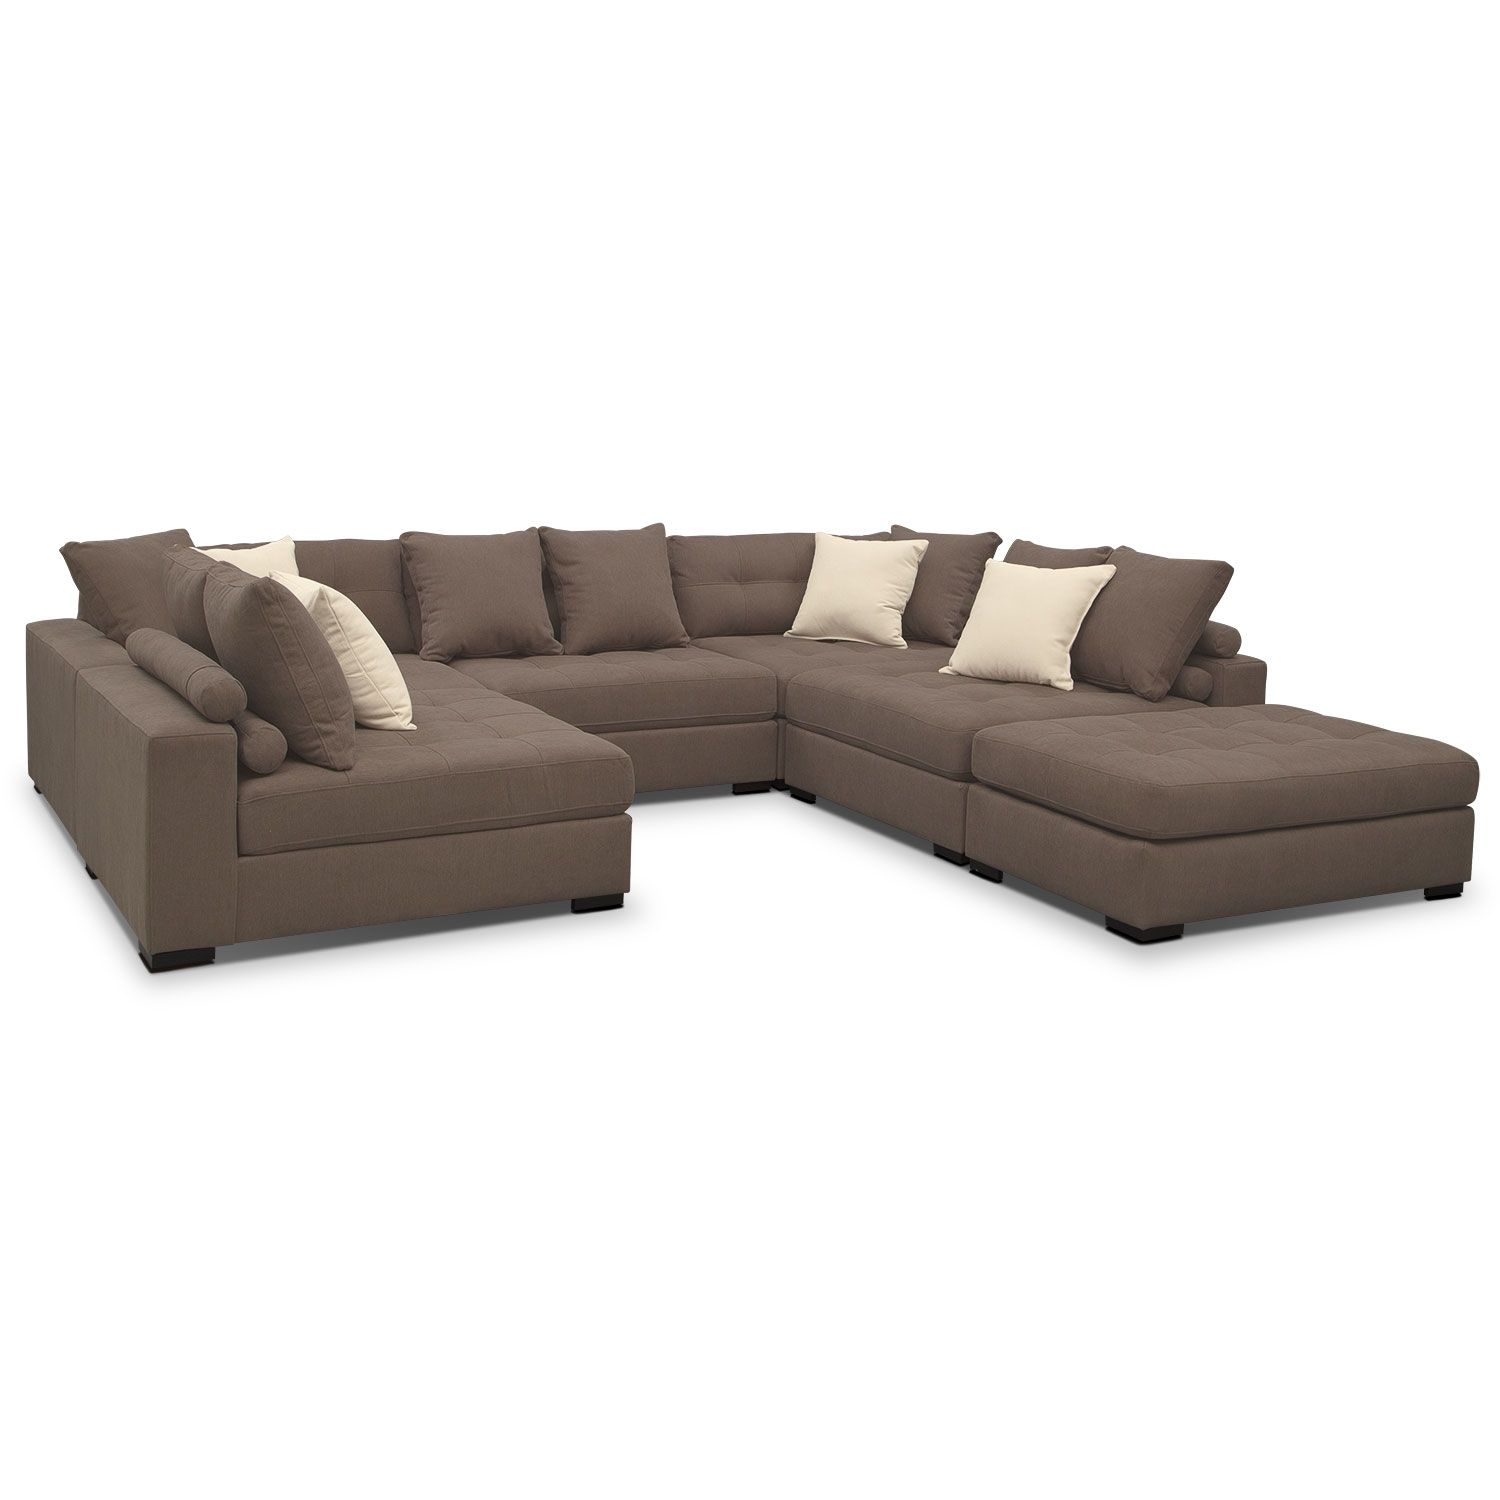 Most comfortable sectional sofa - Shop For The Most Comfortable Sectional Couches Right Here At Value City You Ll Find Some Of The Largest And Coziest Couches At The Best Prices Available